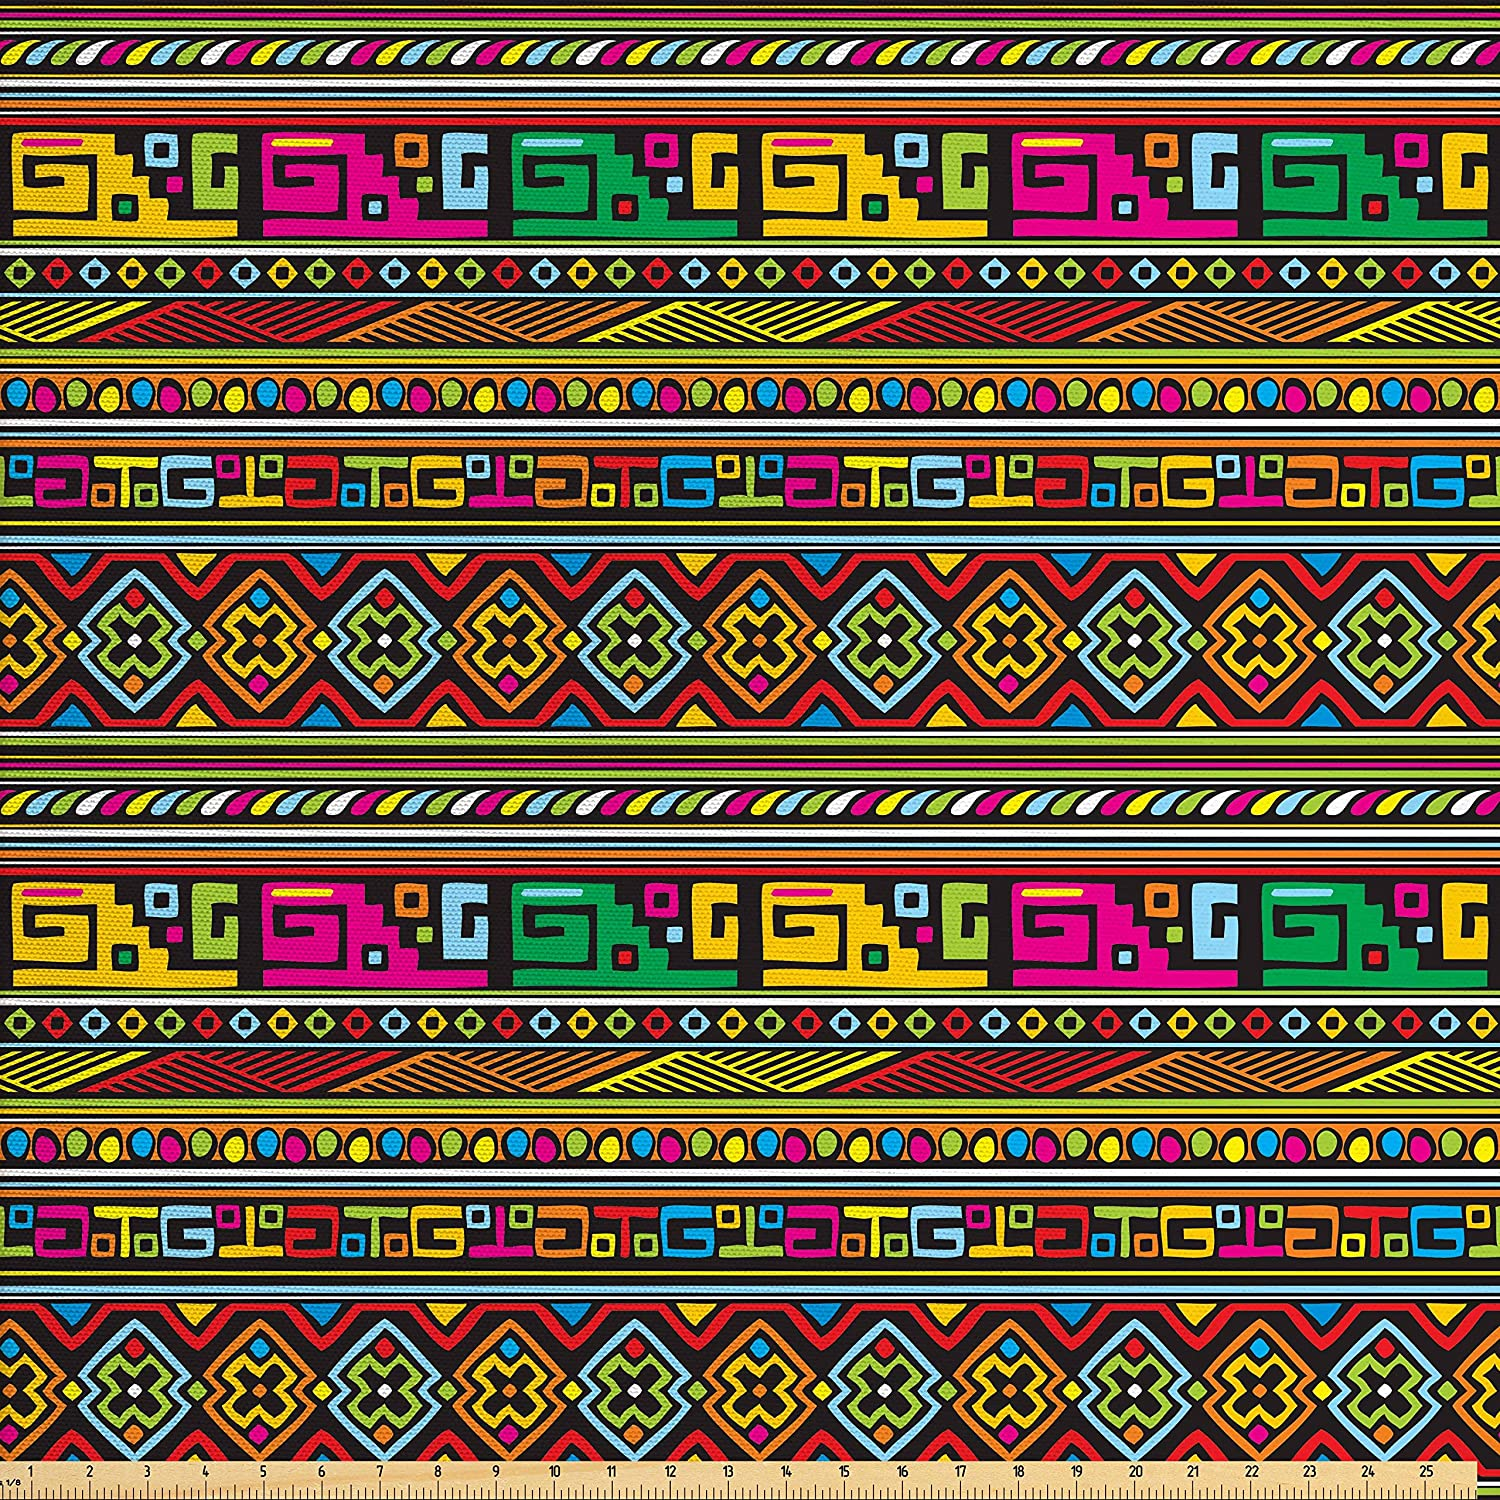 Ambesonne Tribal Fabric by The Yard, Design with Colorful Geometrical Details Borders Vector Themed Print, Decorative Fabric for Upholstery and Home Accents, Multicolor